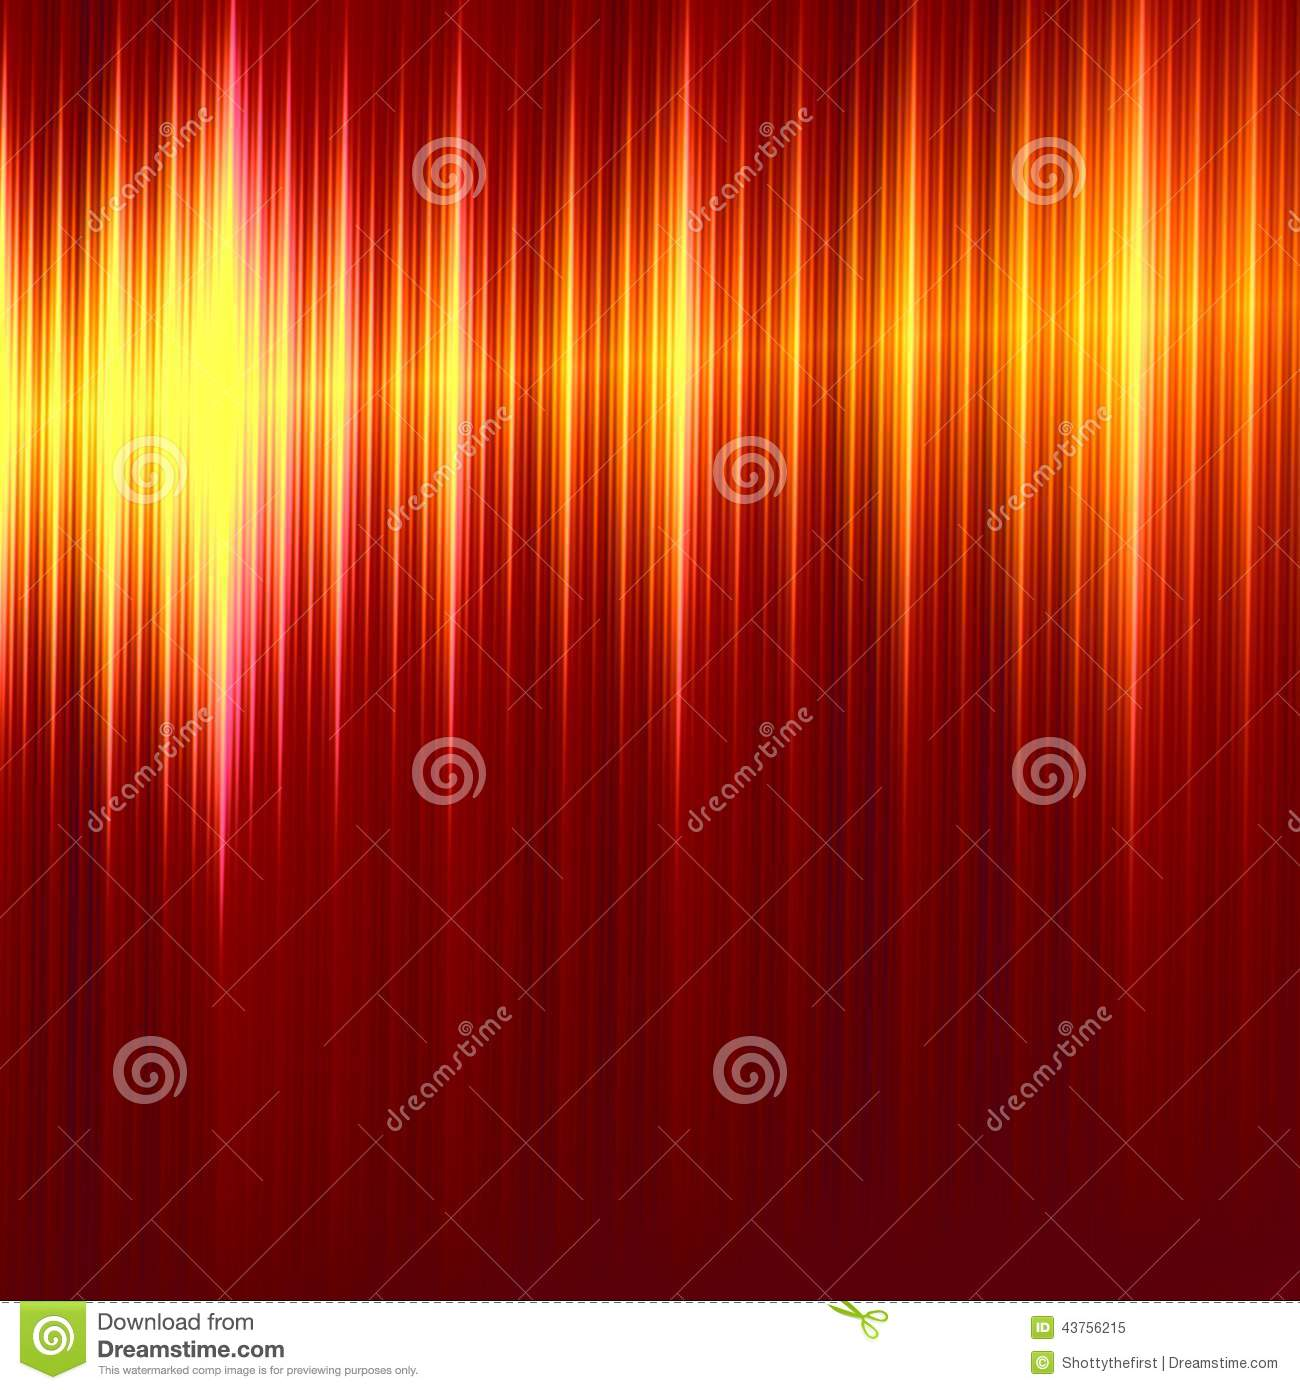 abstract metallic red lines background elegant stock